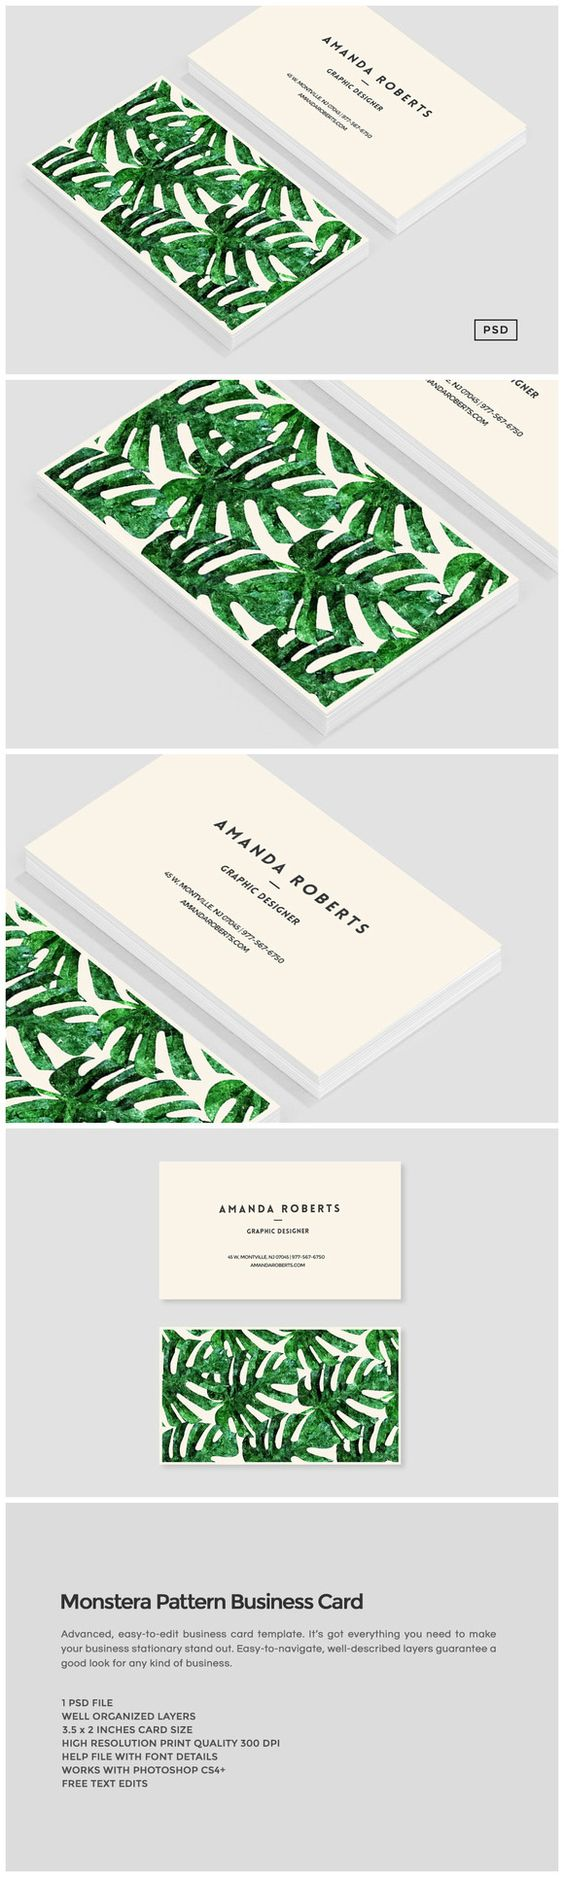 Monstera Pattern Business Card Introducing our latest Monstera Pattern business card template, perfect for use in your next project or for your own brand identity. All our logo desi... creativemarket.co... Business Card Free Design http://www.plasticcardonline.com